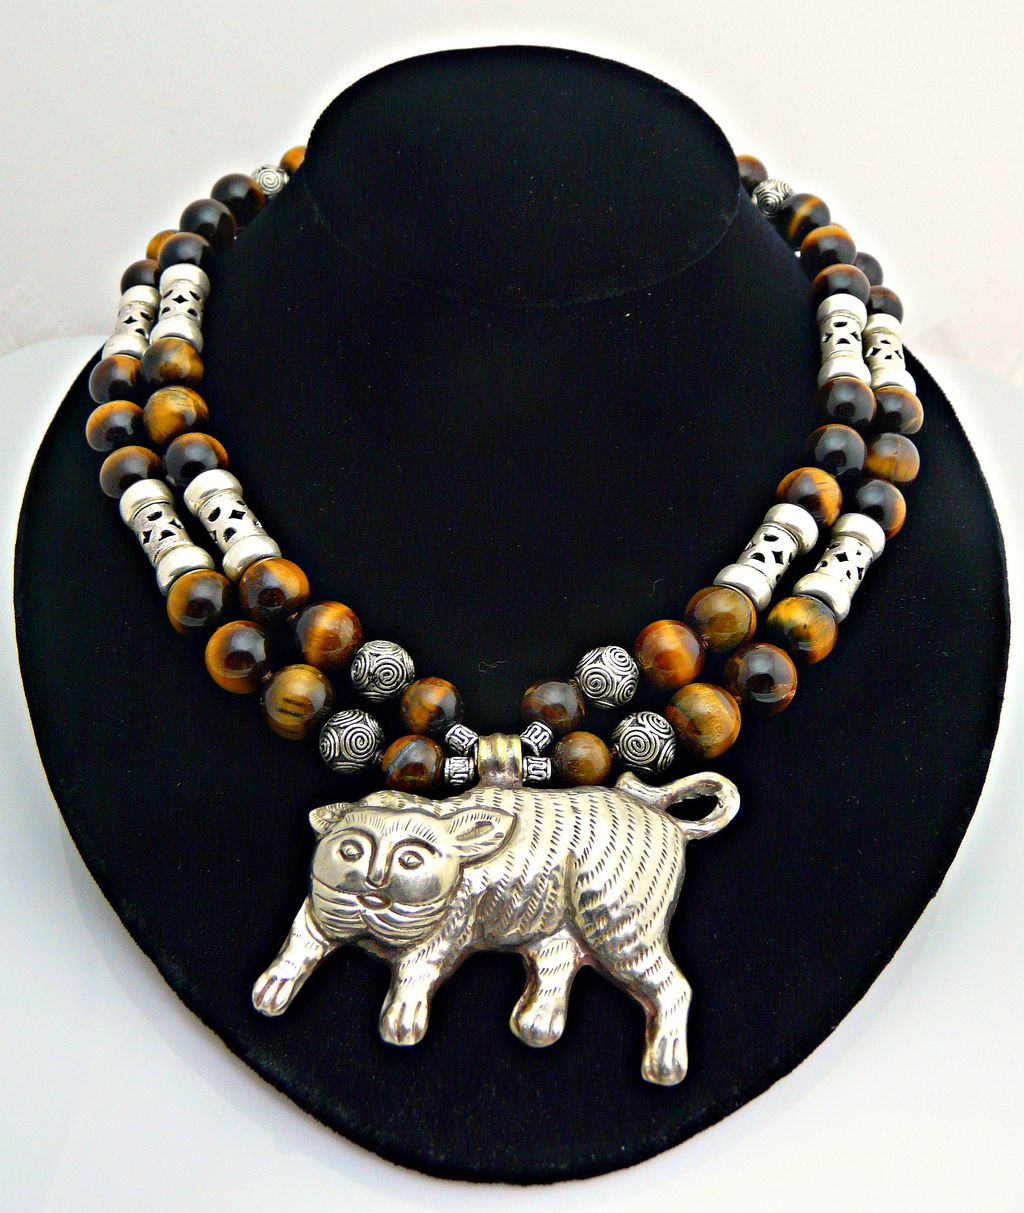 Adorable-Tiger Eye and Sterling Silver Necklace with Tiger Pendant